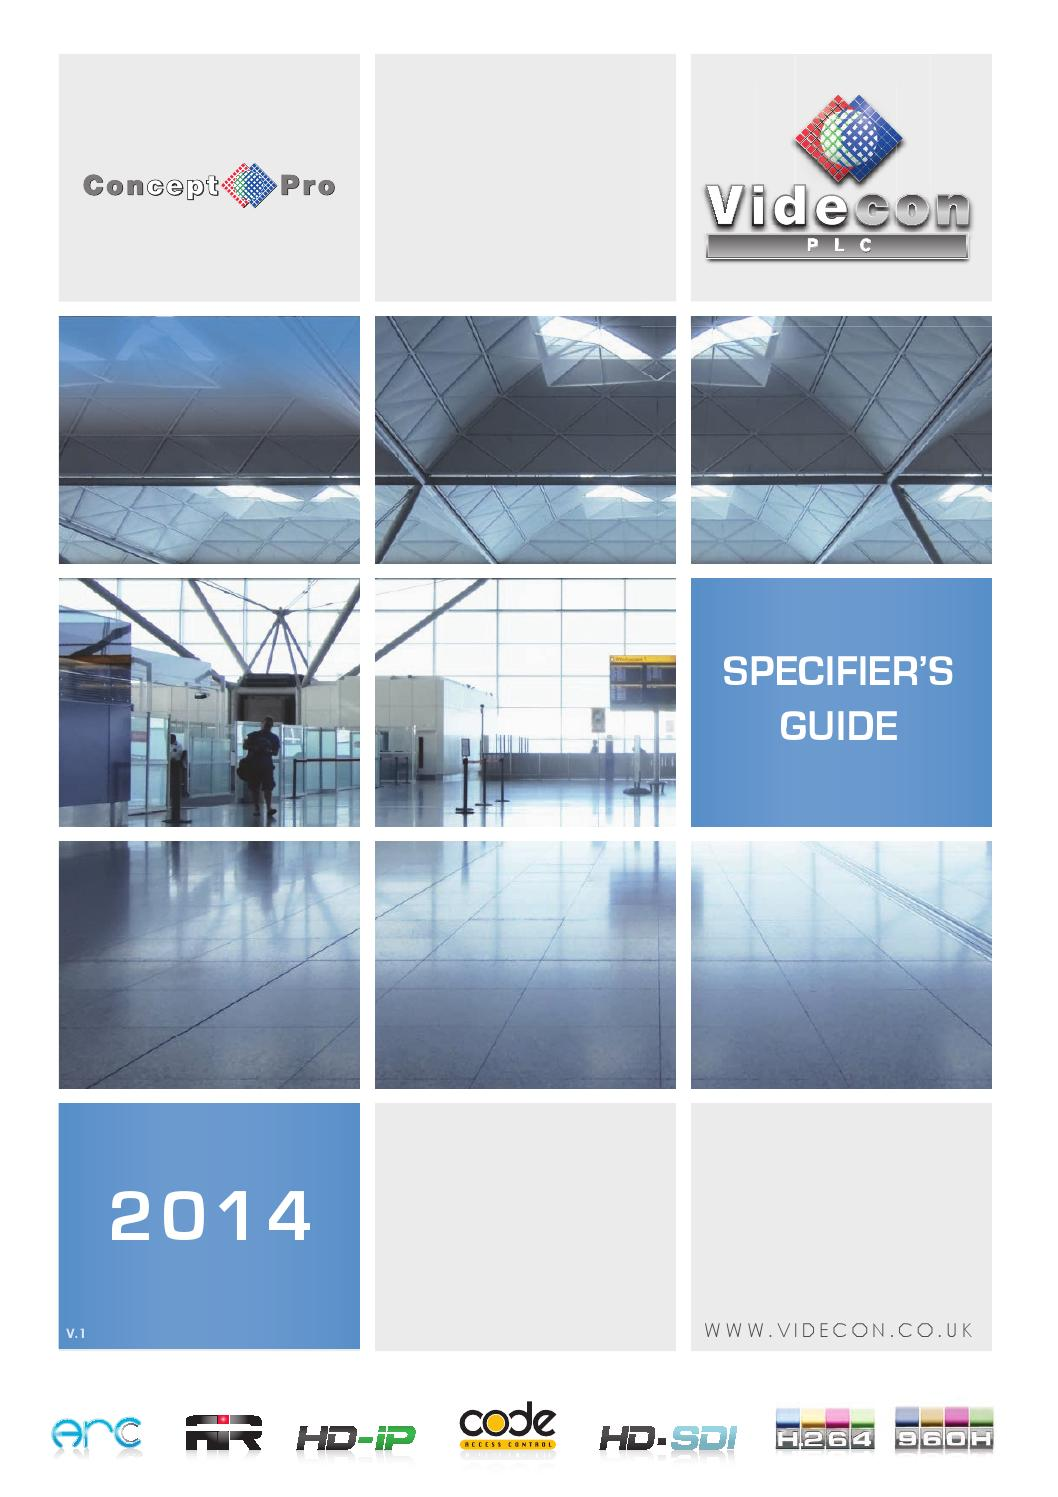 Videcon Specifiers Guide 2014 Preview By Plc Issuu Pelco Ccd Camera Wiring Diagram